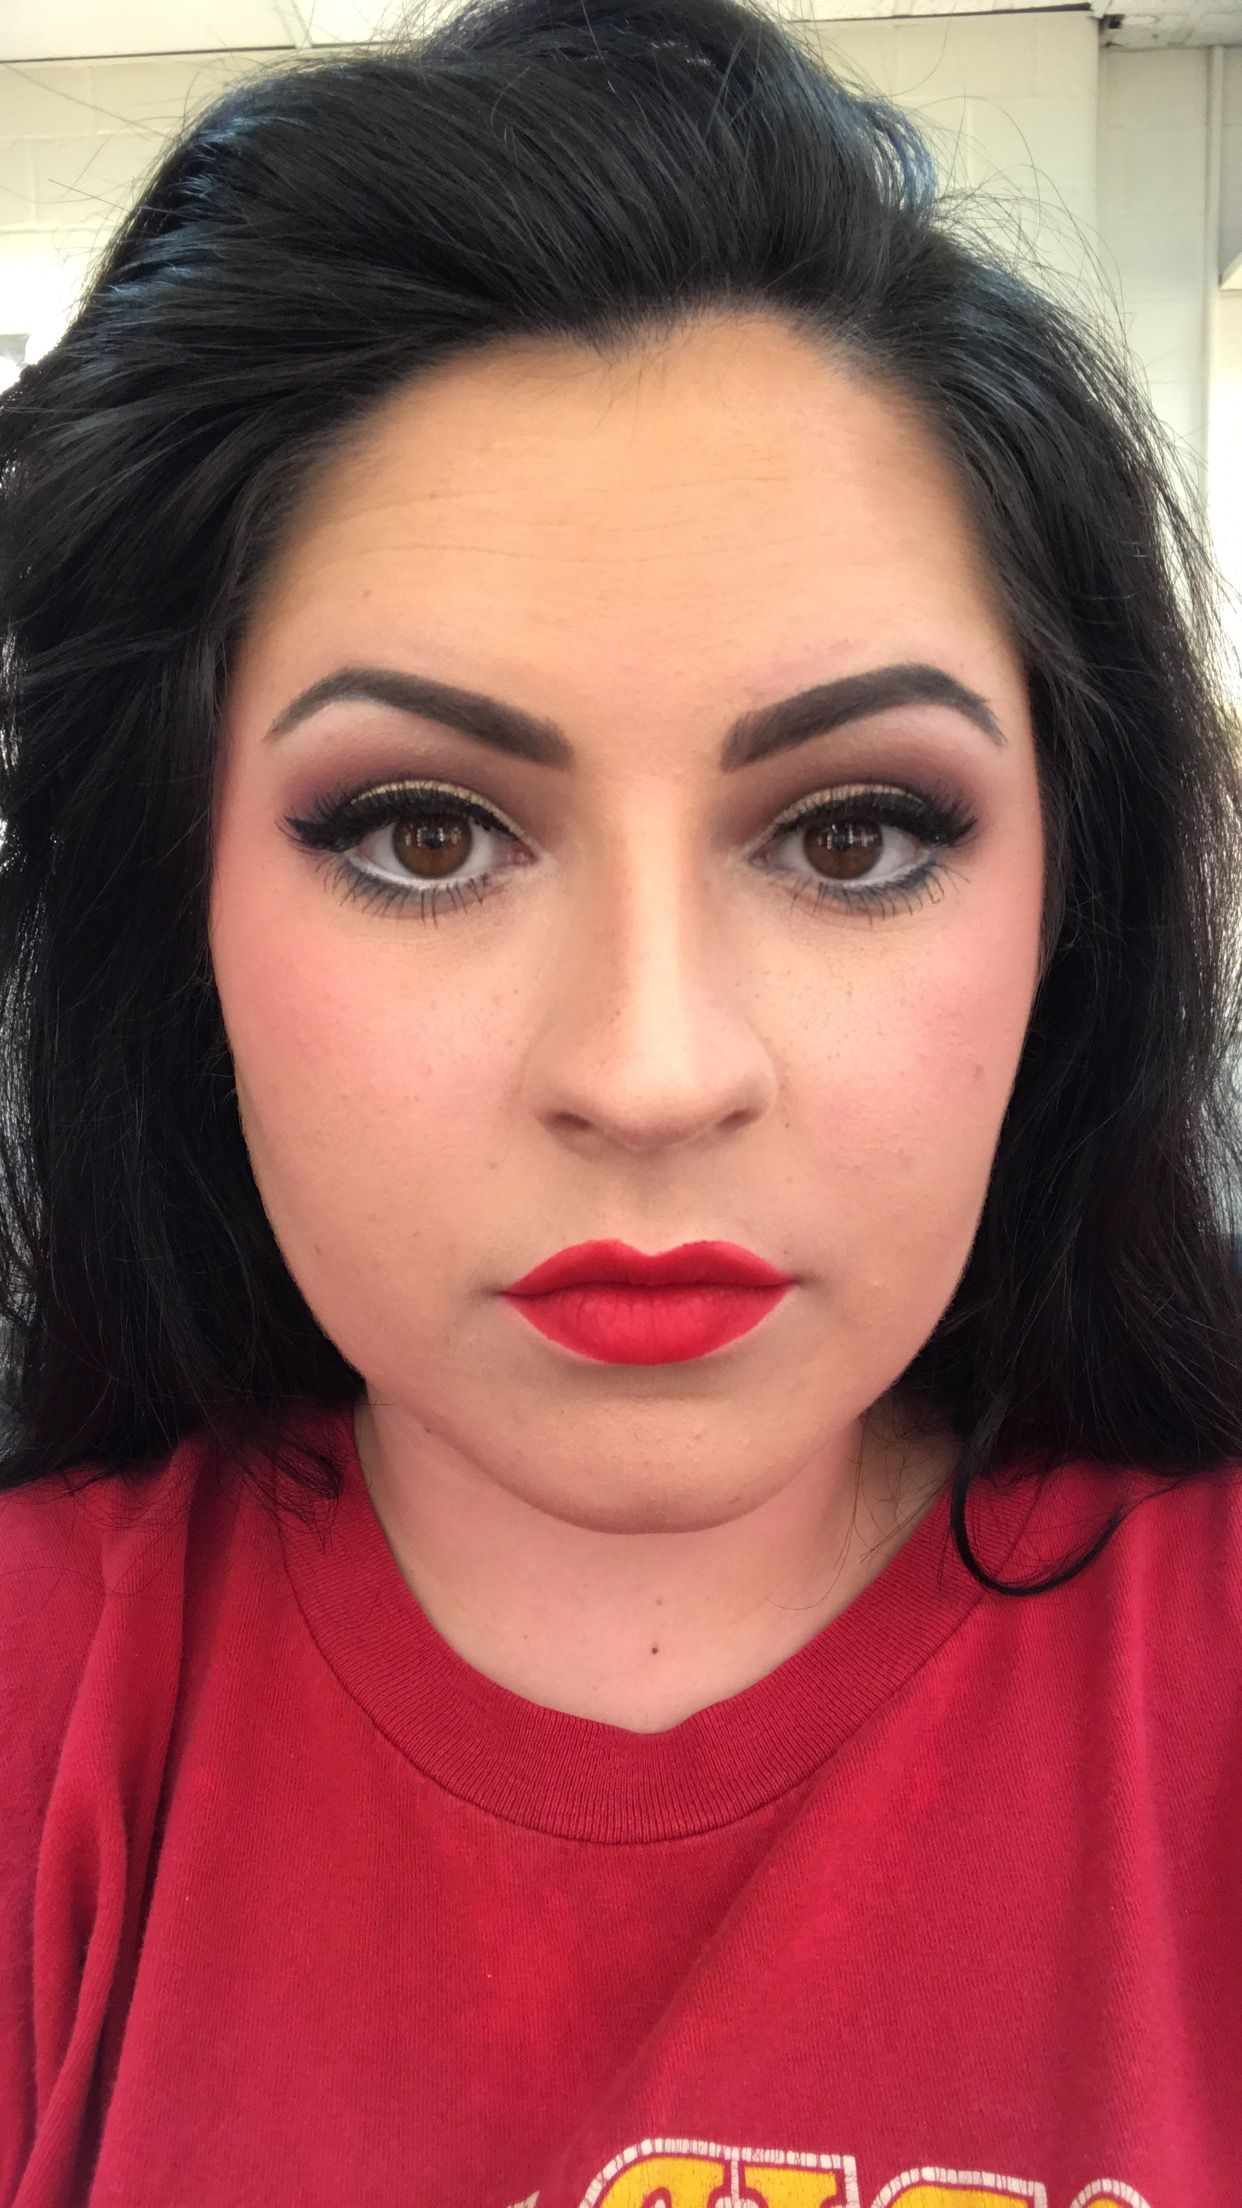 Straight Theater Makeup On Myself: Stage Makeup In 2019